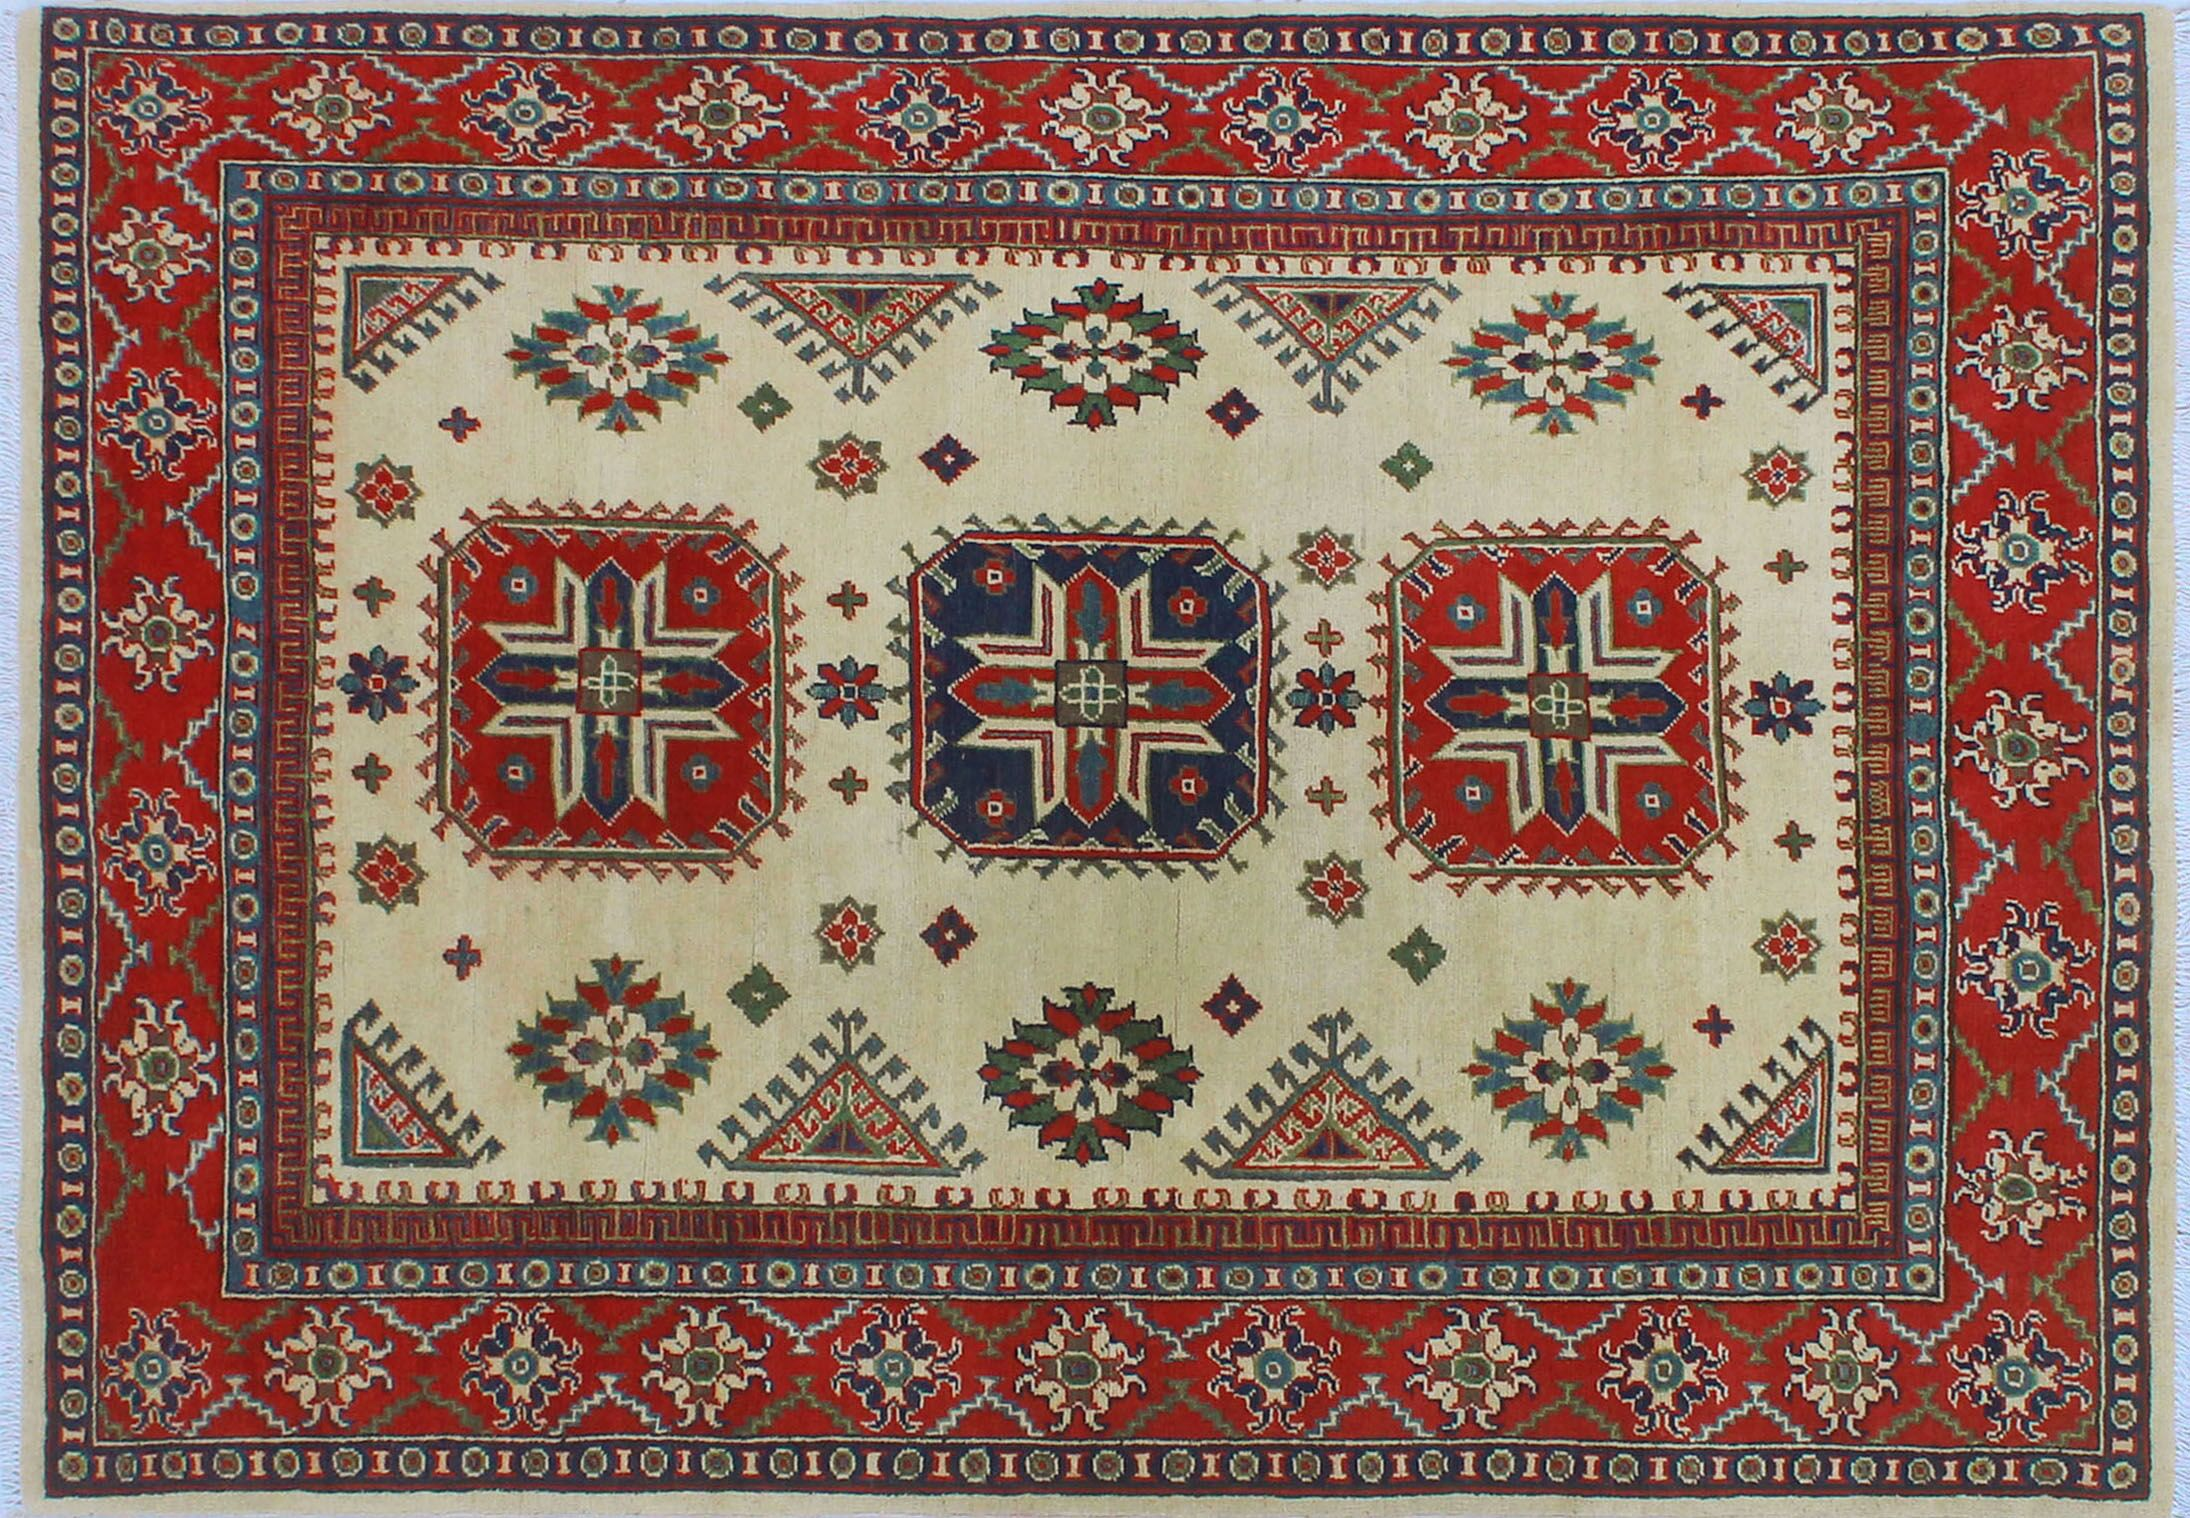 Sharpe Hand-Knotted Wool Red/Cream Area Rug